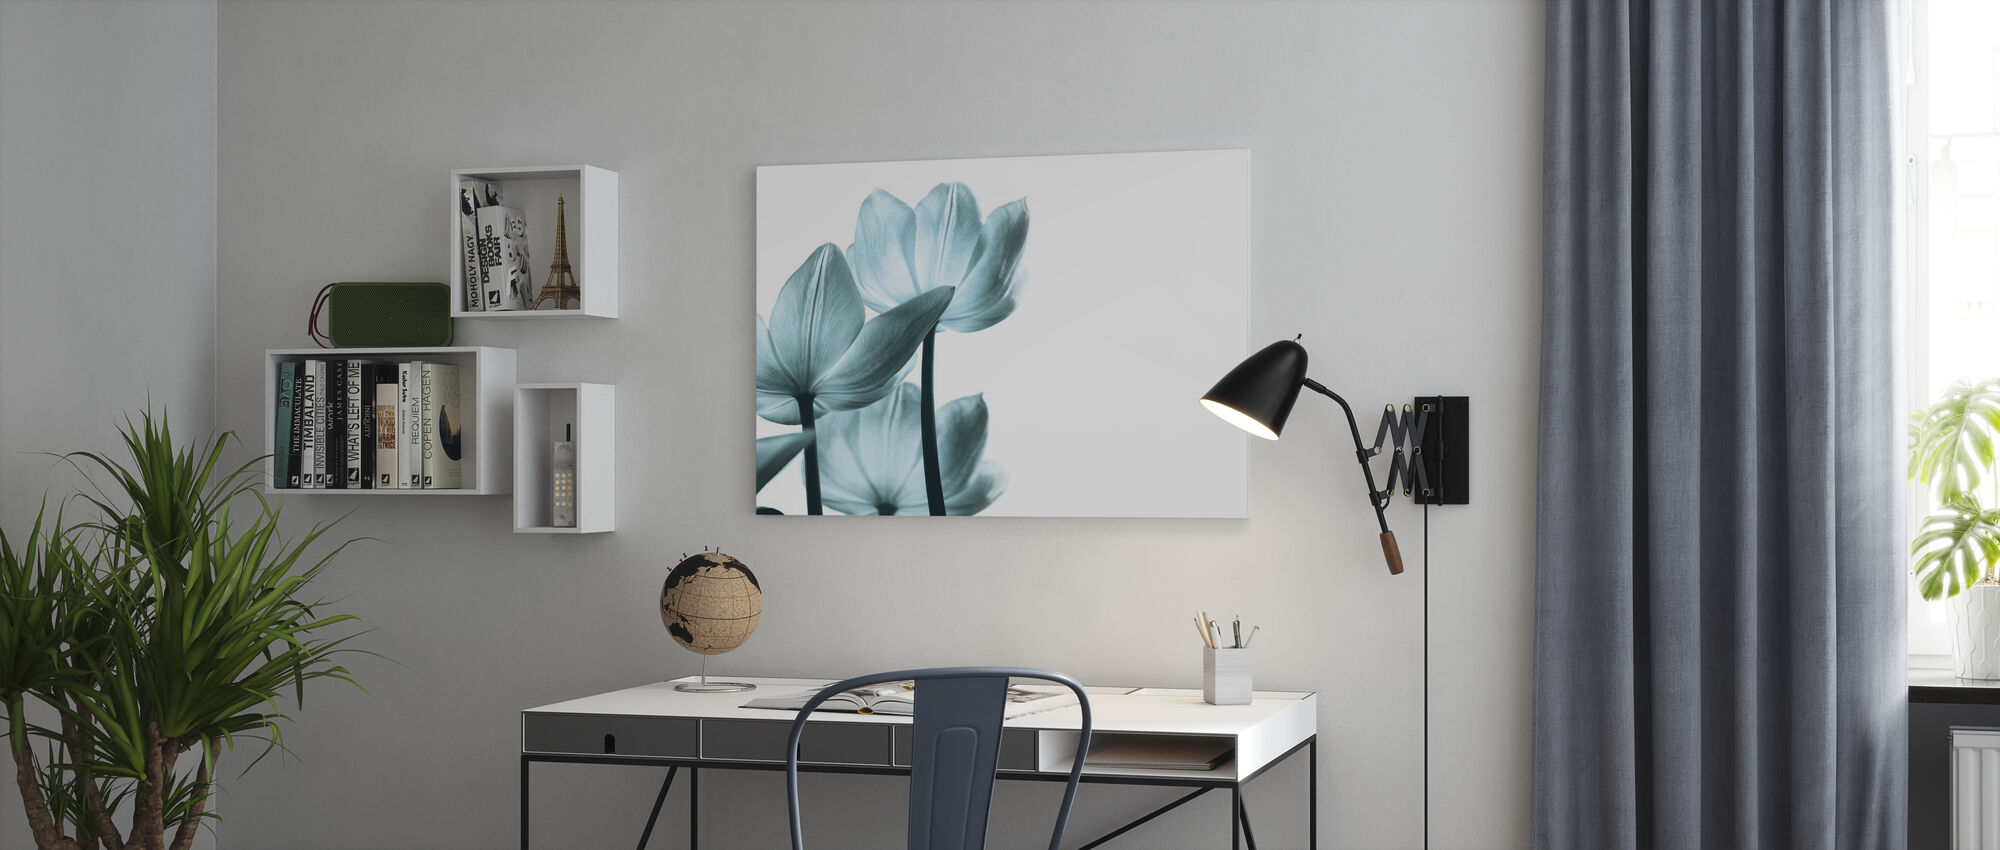 Translucent Tulips - Canvas print - Office